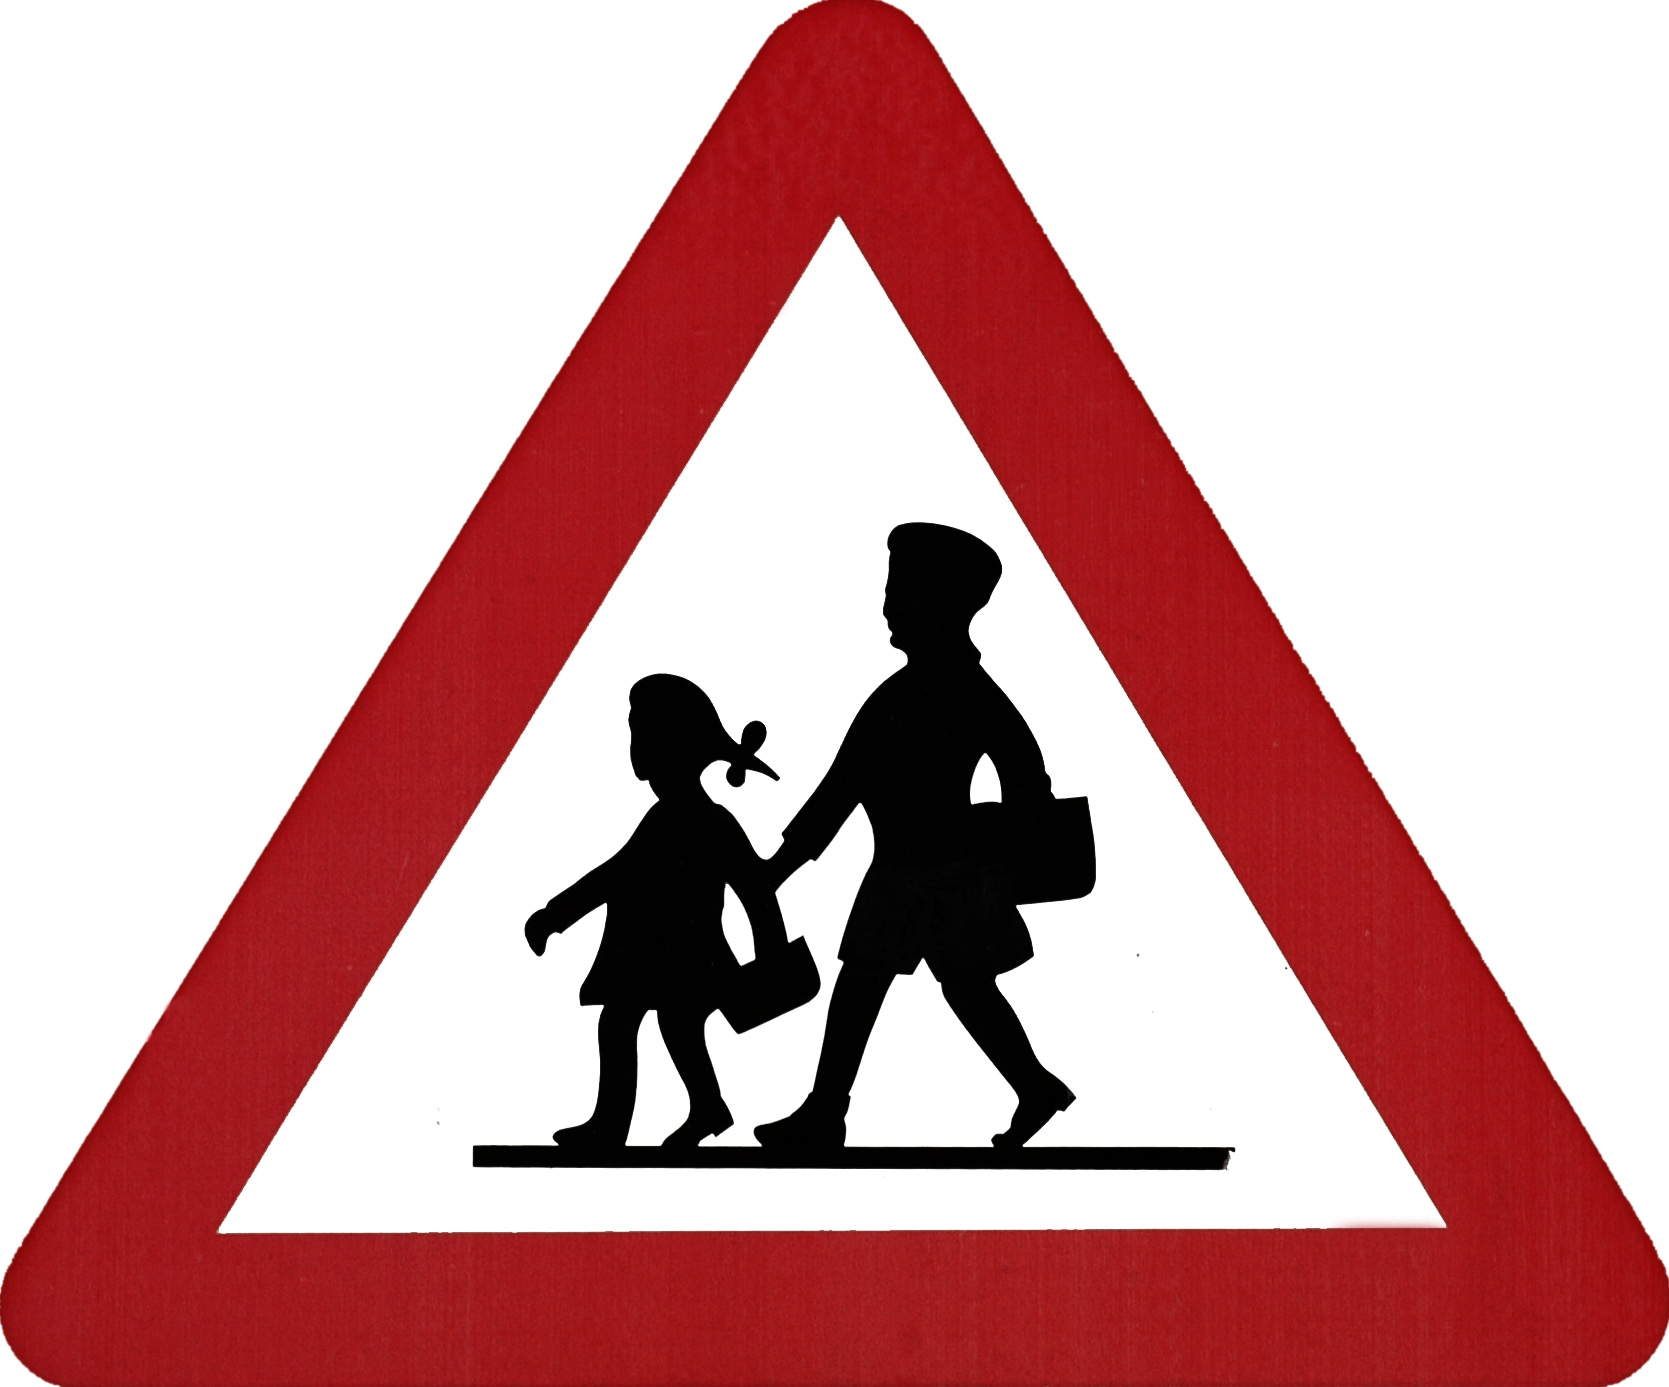 Free Traffic Signs Images Download Free Clip Art Free Clip Art On Clipart Library